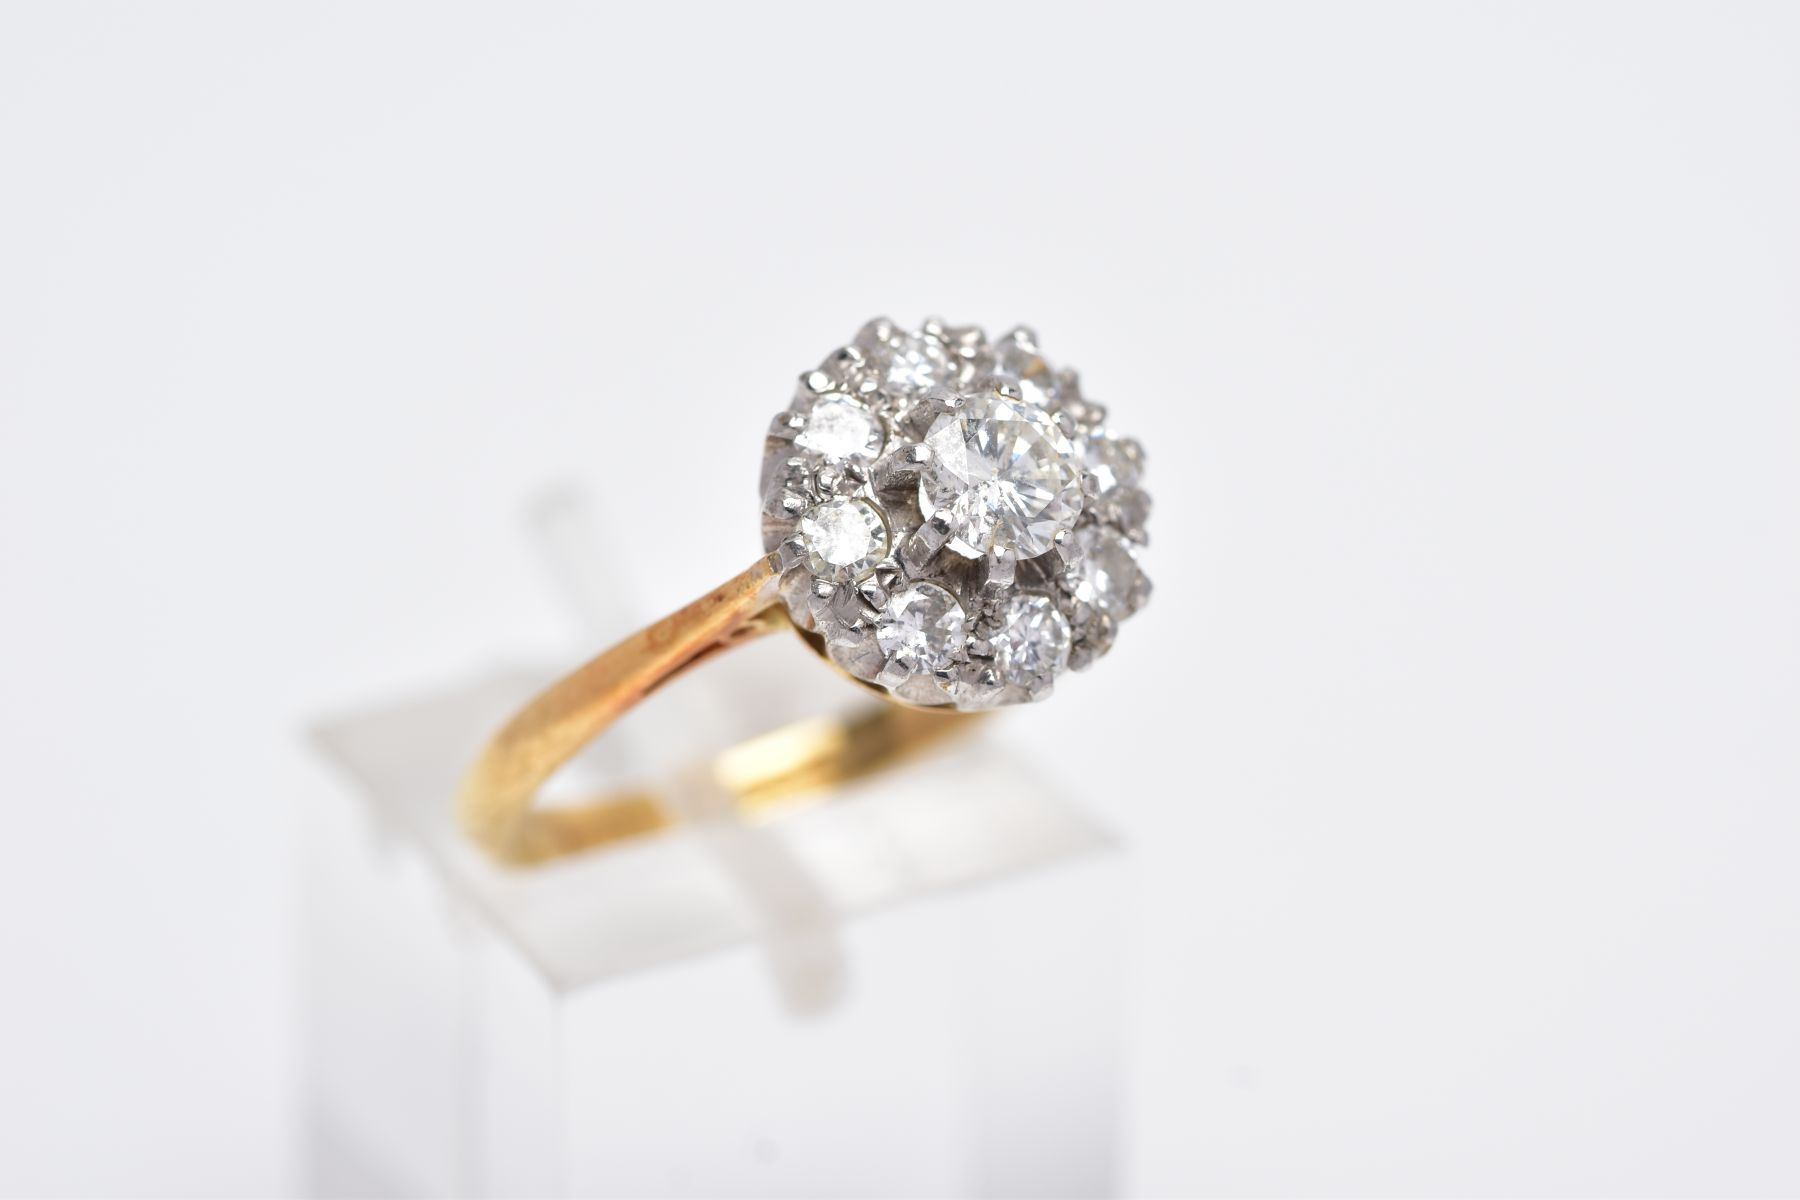 A LATE 20TH CENTURY ROUND DIAMOND CLUSTER RING, centring on a modern round brilliant cut diamond, - Image 4 of 5